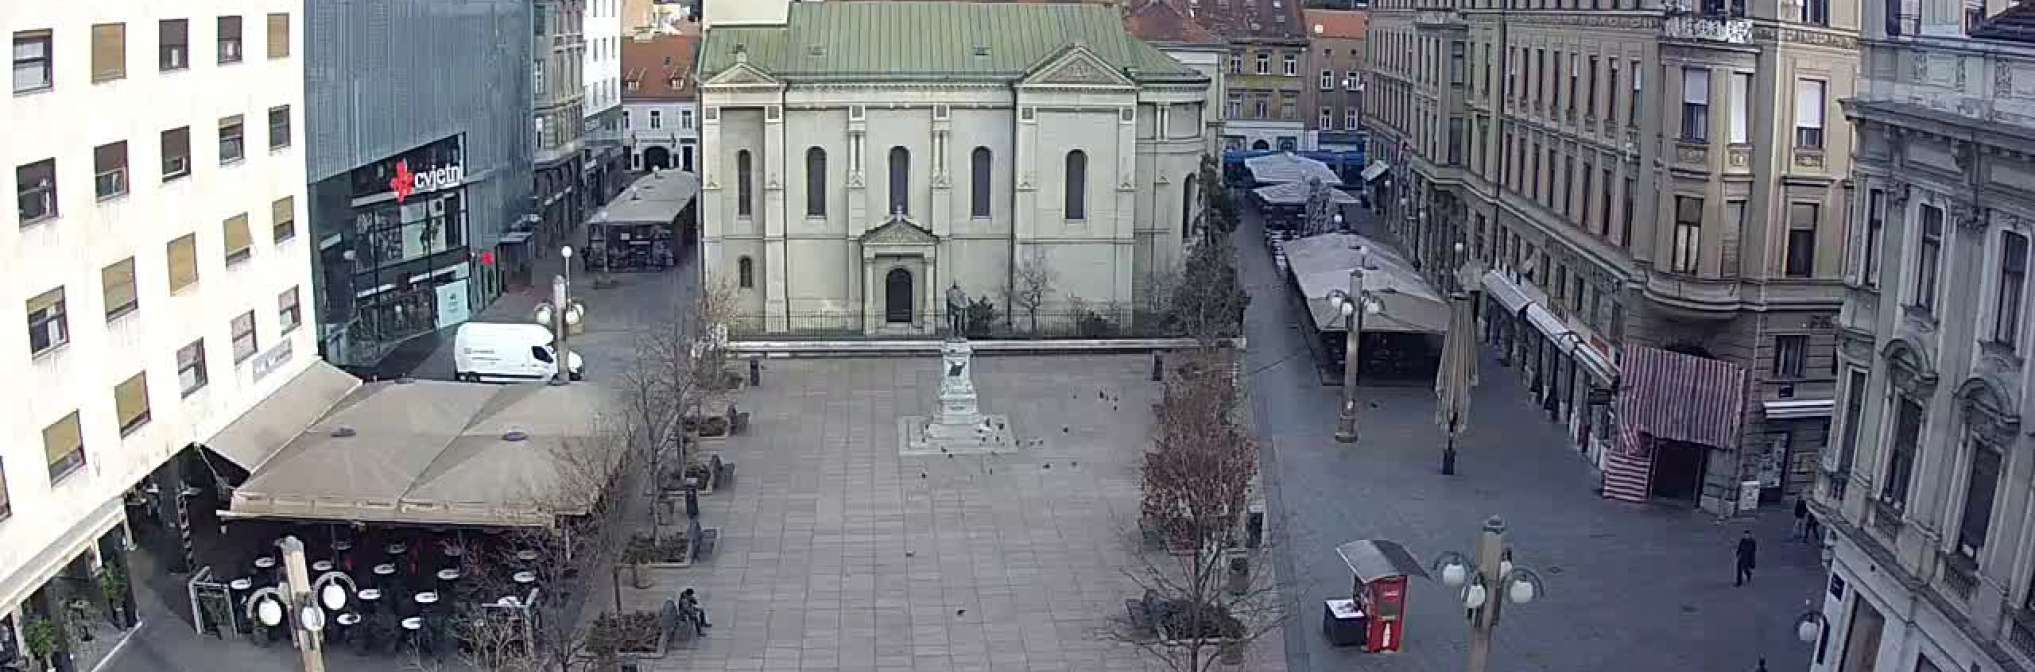 Zagreb Cvjetni Trg Zagreb Right Now Live Livestreaming Cameras From Croatia Livecamcroatia Explore Croatia